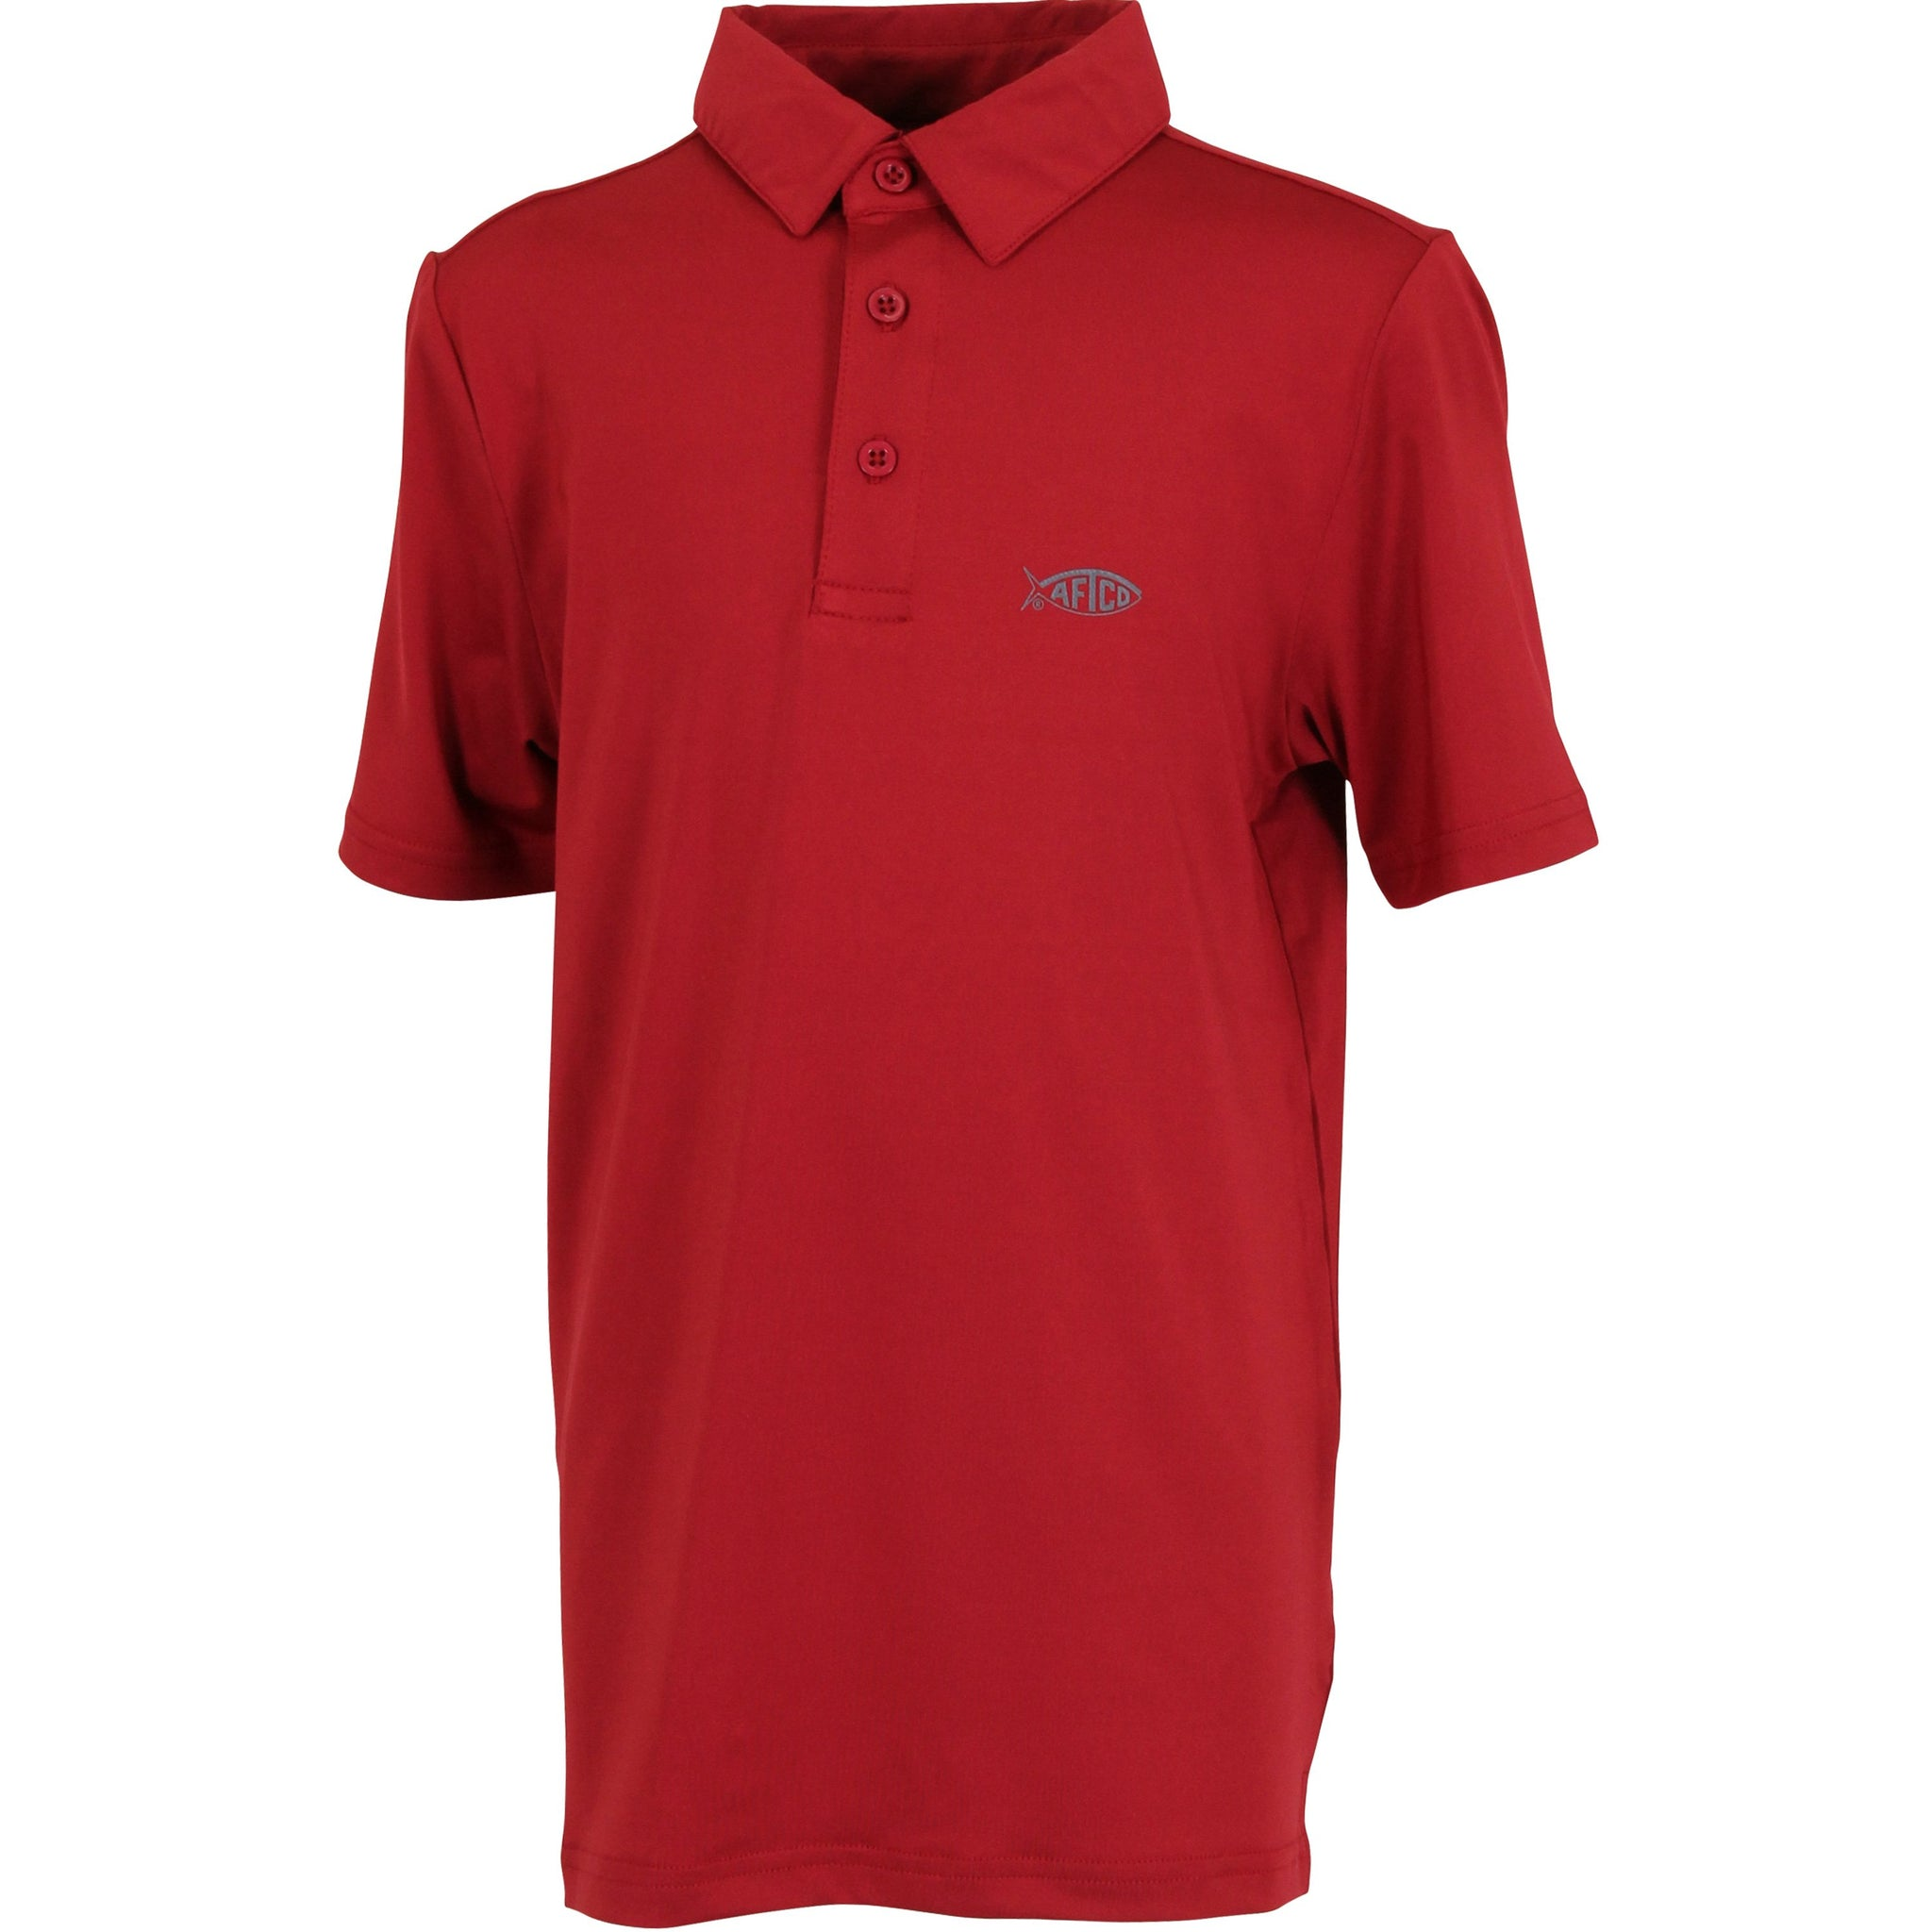 YOUTH WELLINGTON PERFORMANCE POLO SHIRT